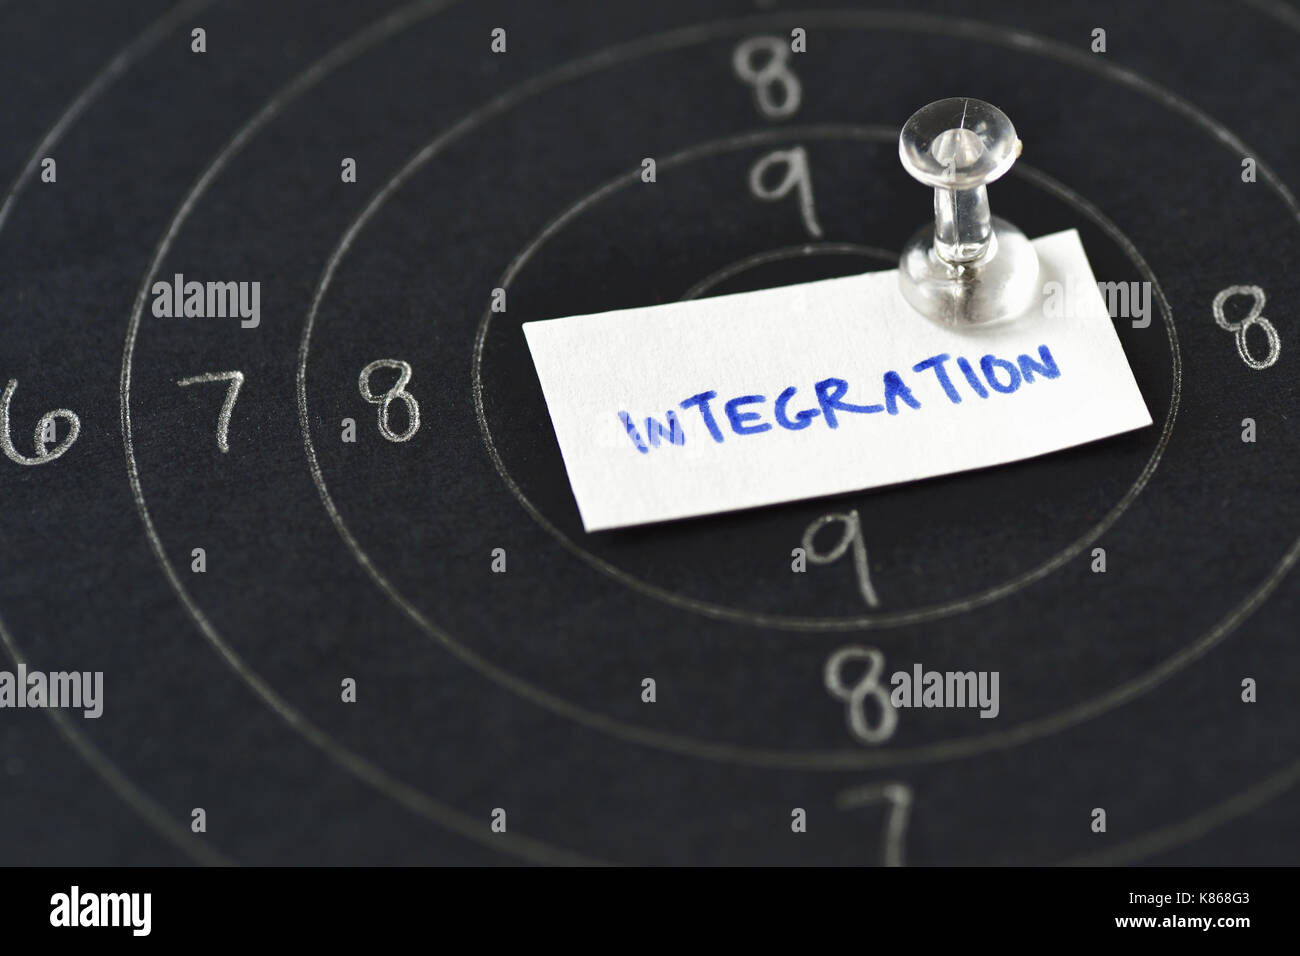 Integration word written on paper in center of shooting target - Stock Image